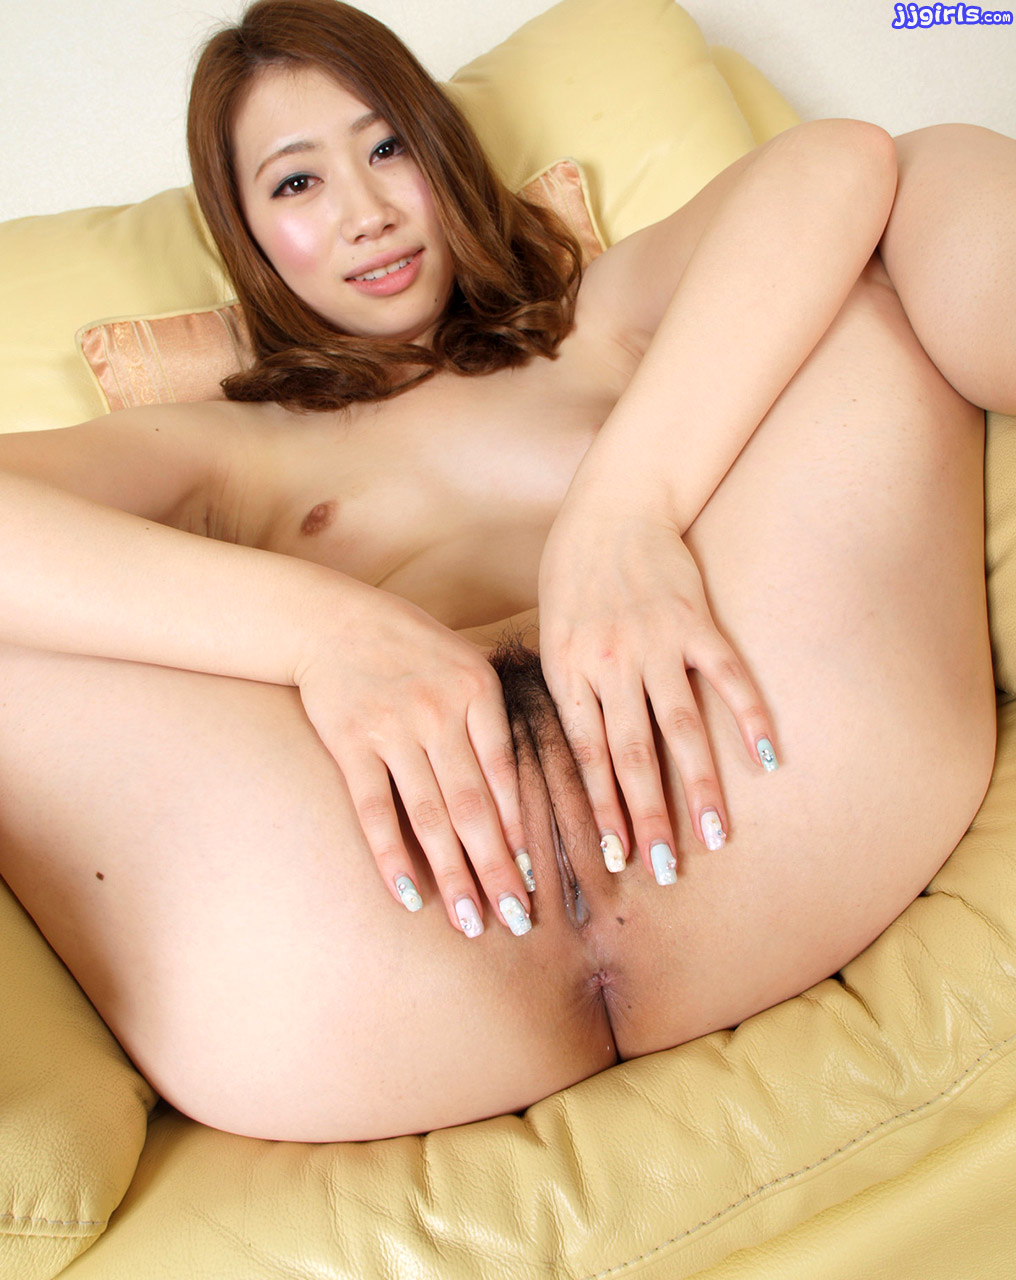 Japan adult girl xxx valuable information